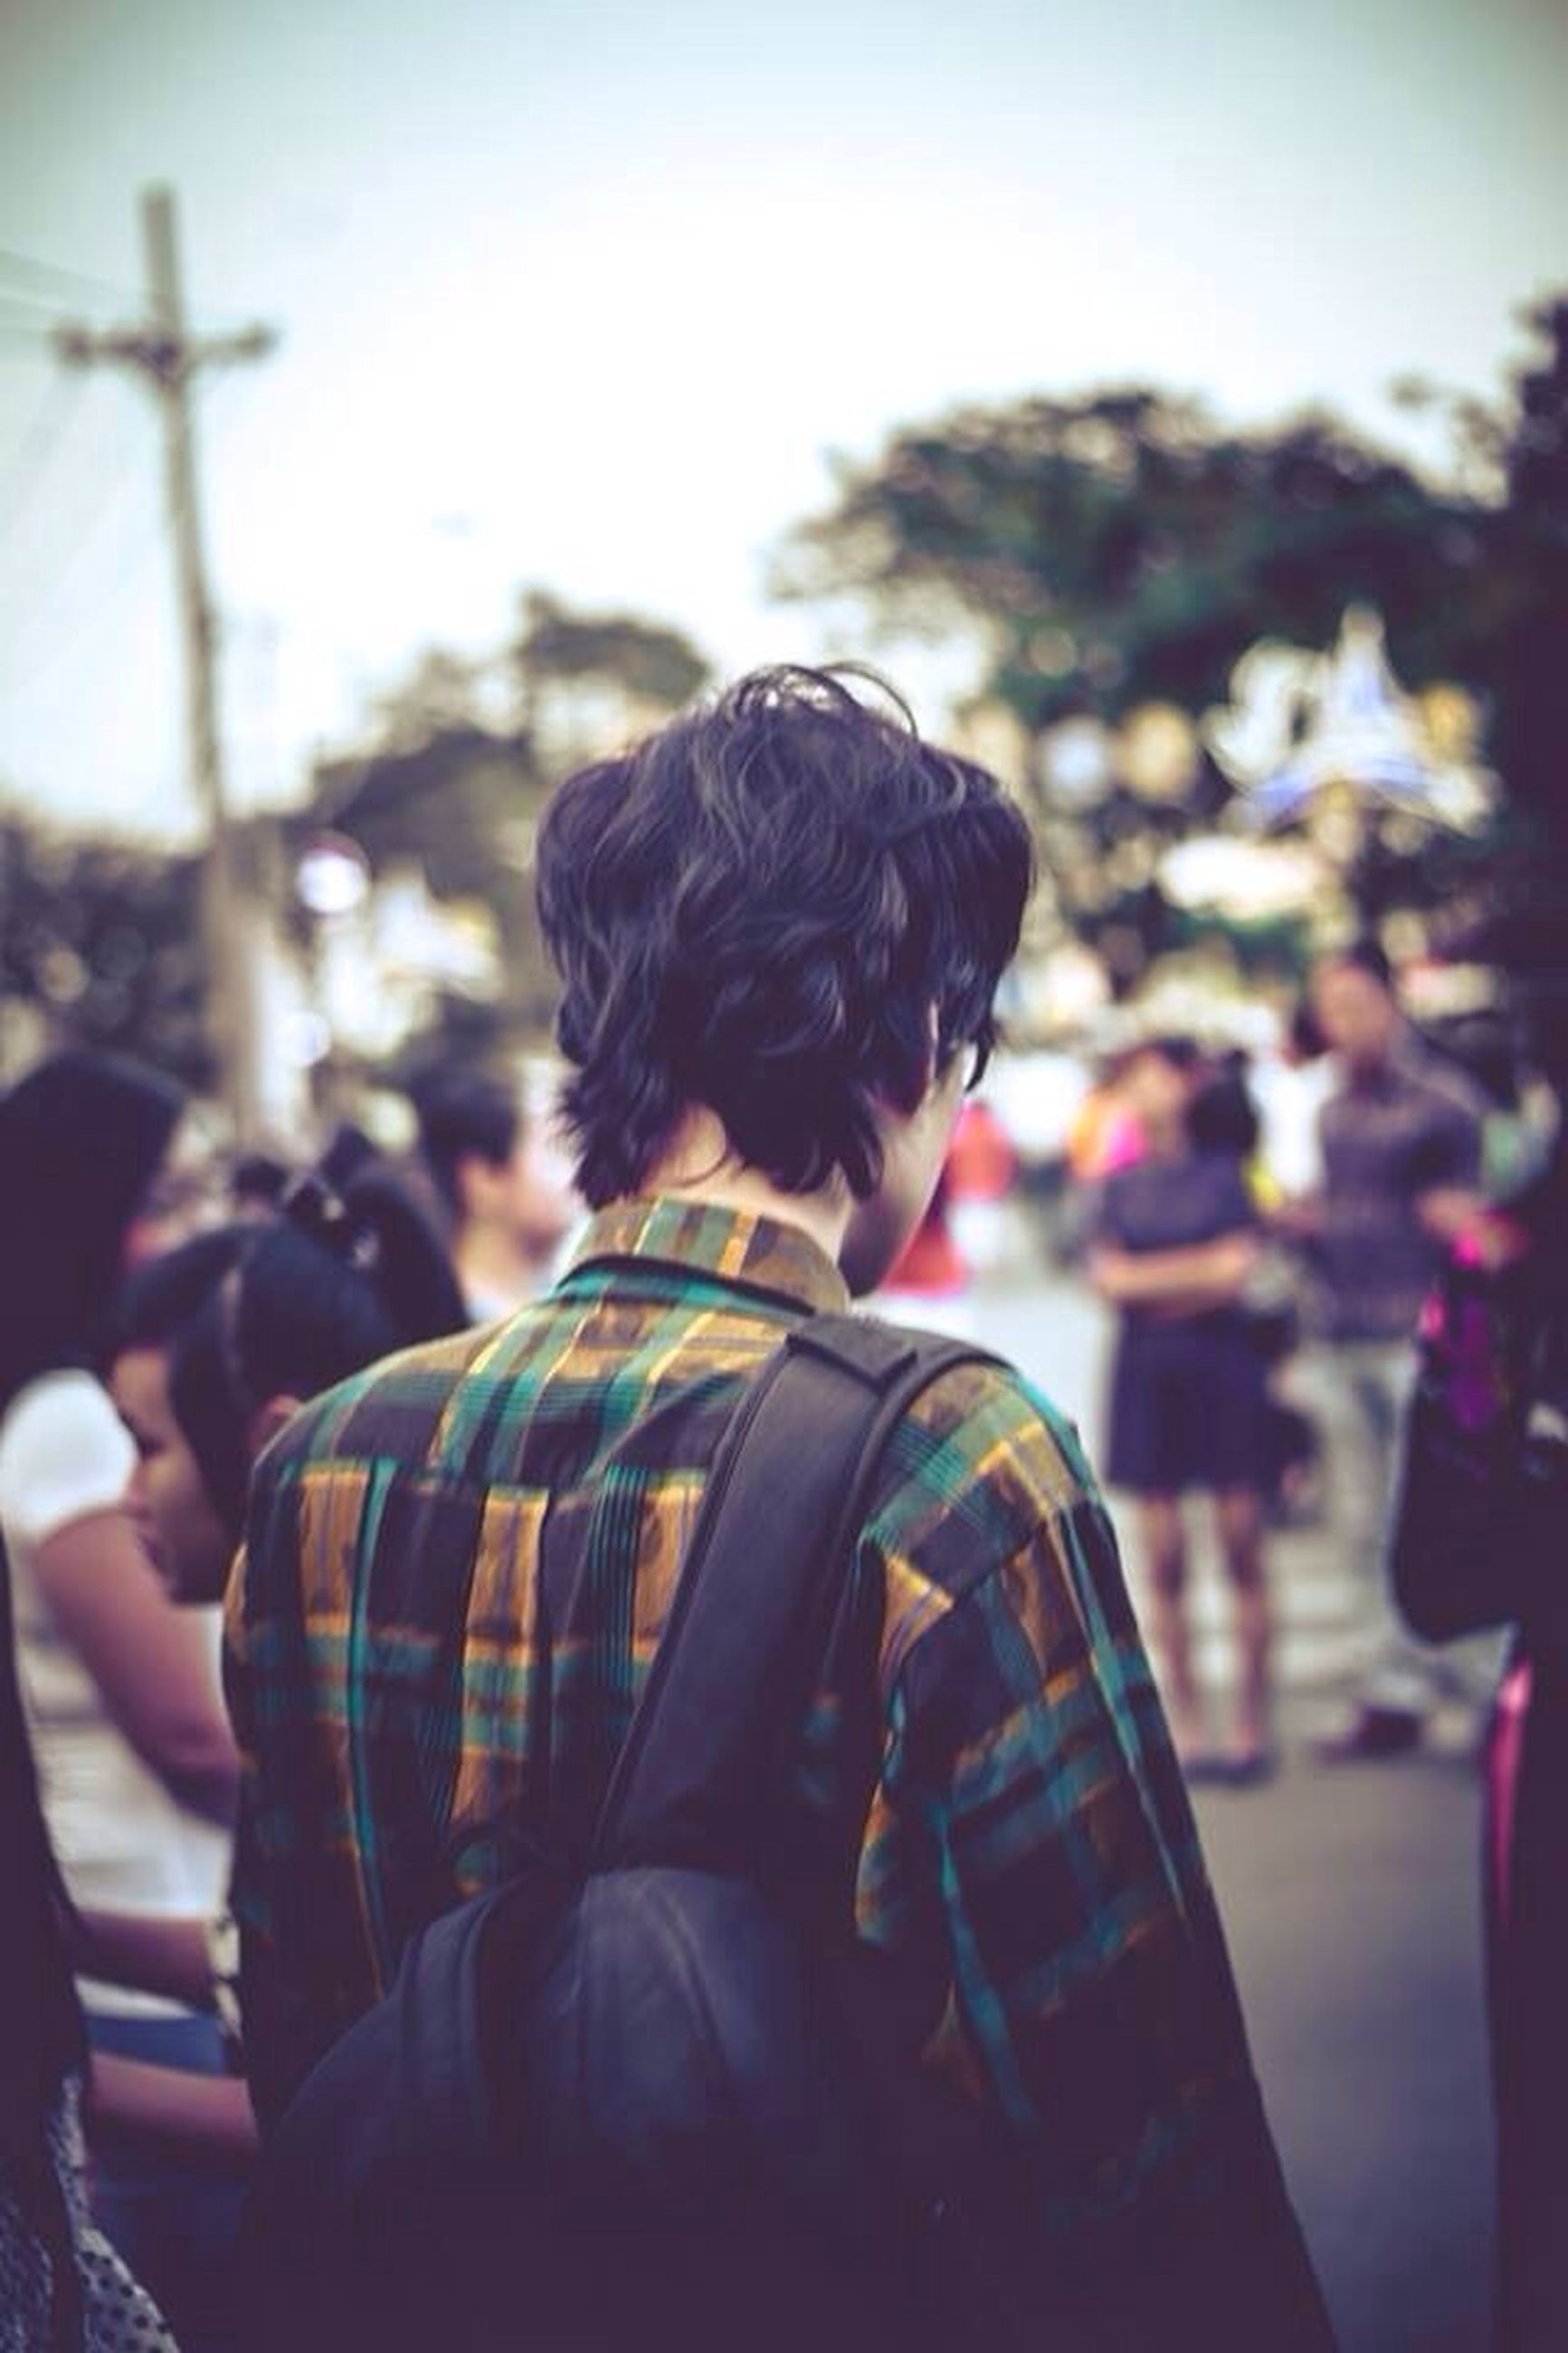 focus on foreground, rear view, lifestyles, men, leisure activity, person, waist up, casual clothing, incidental people, standing, outdoors, sitting, street, headshot, large group of people, city, head and shoulders, three quarter length